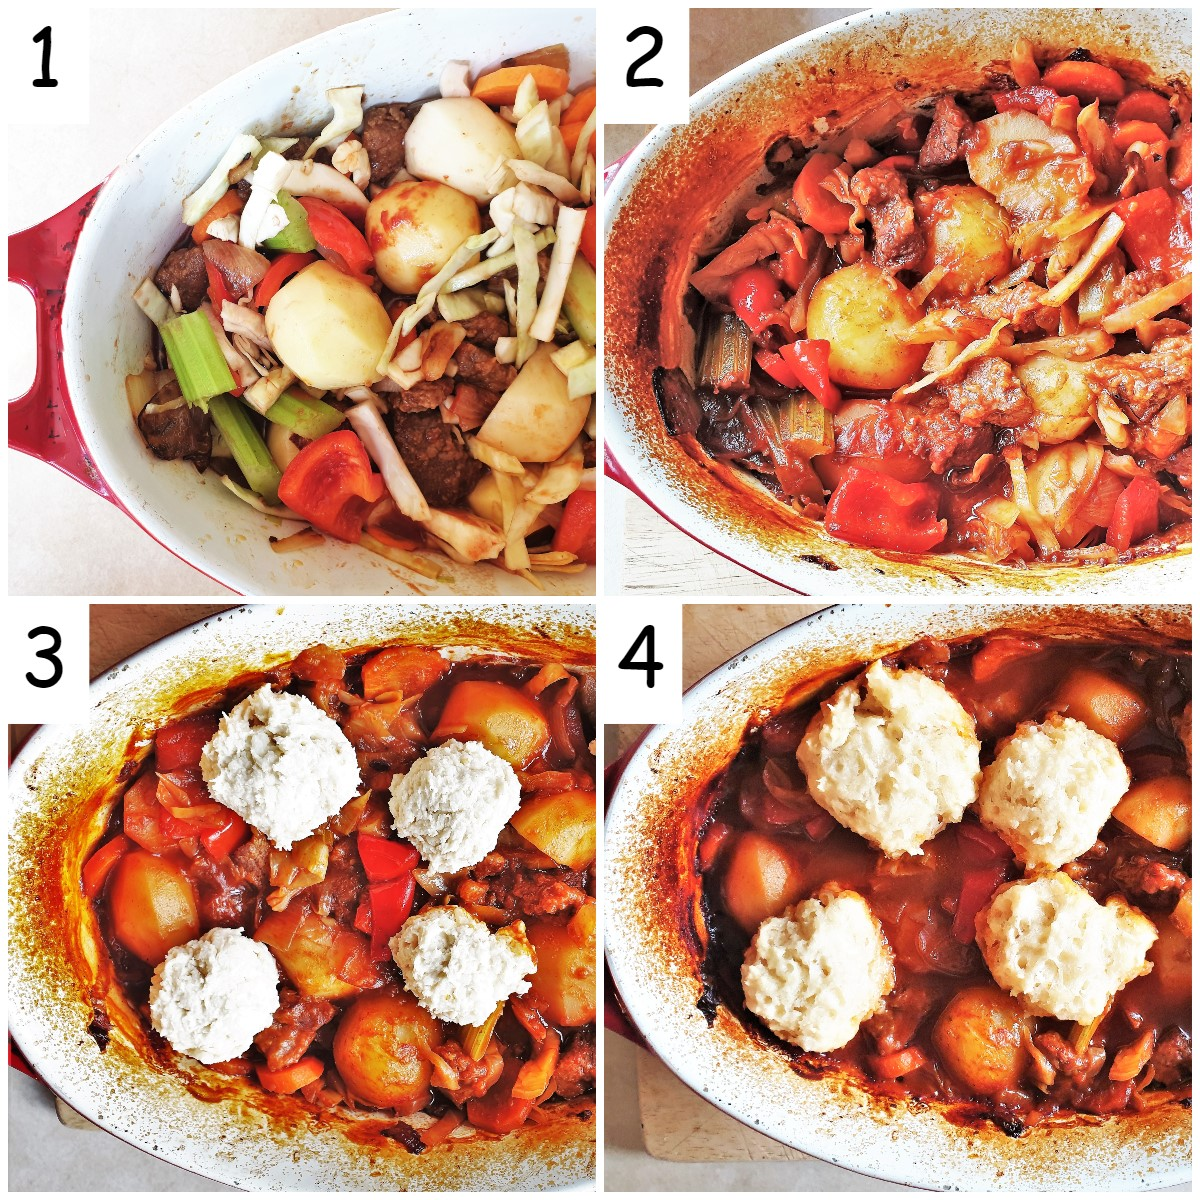 A collage of 4 images showing the stages of cooking the beef casserole and suet dumplings.